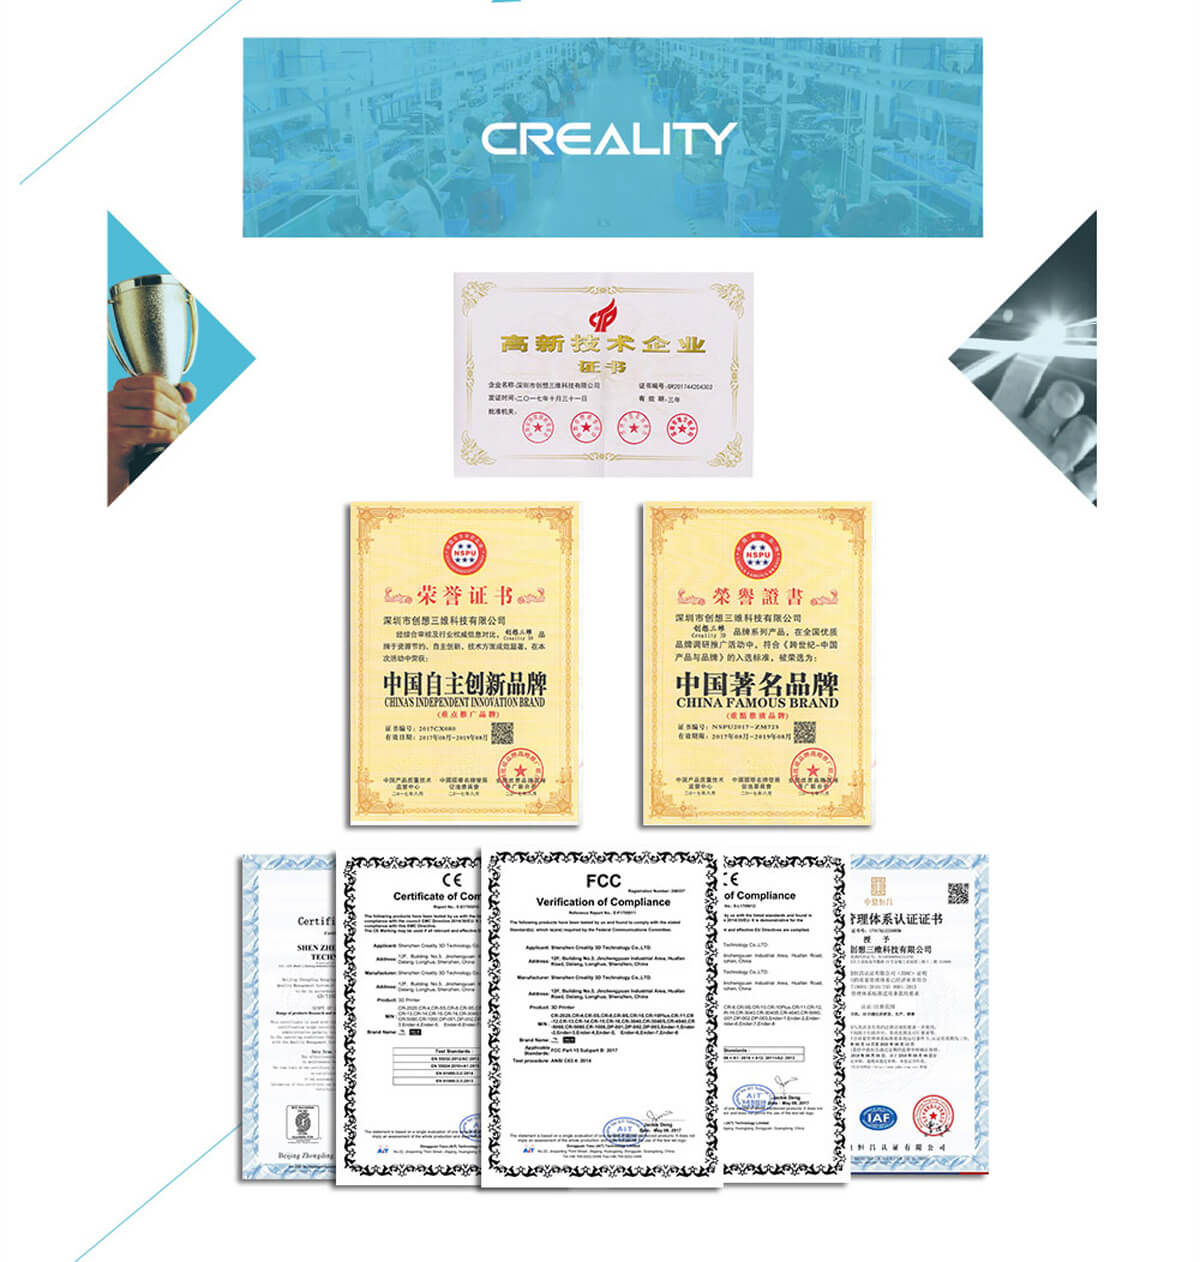 creality-3d-printer-cr-10-s4-platform-sticker-new-18